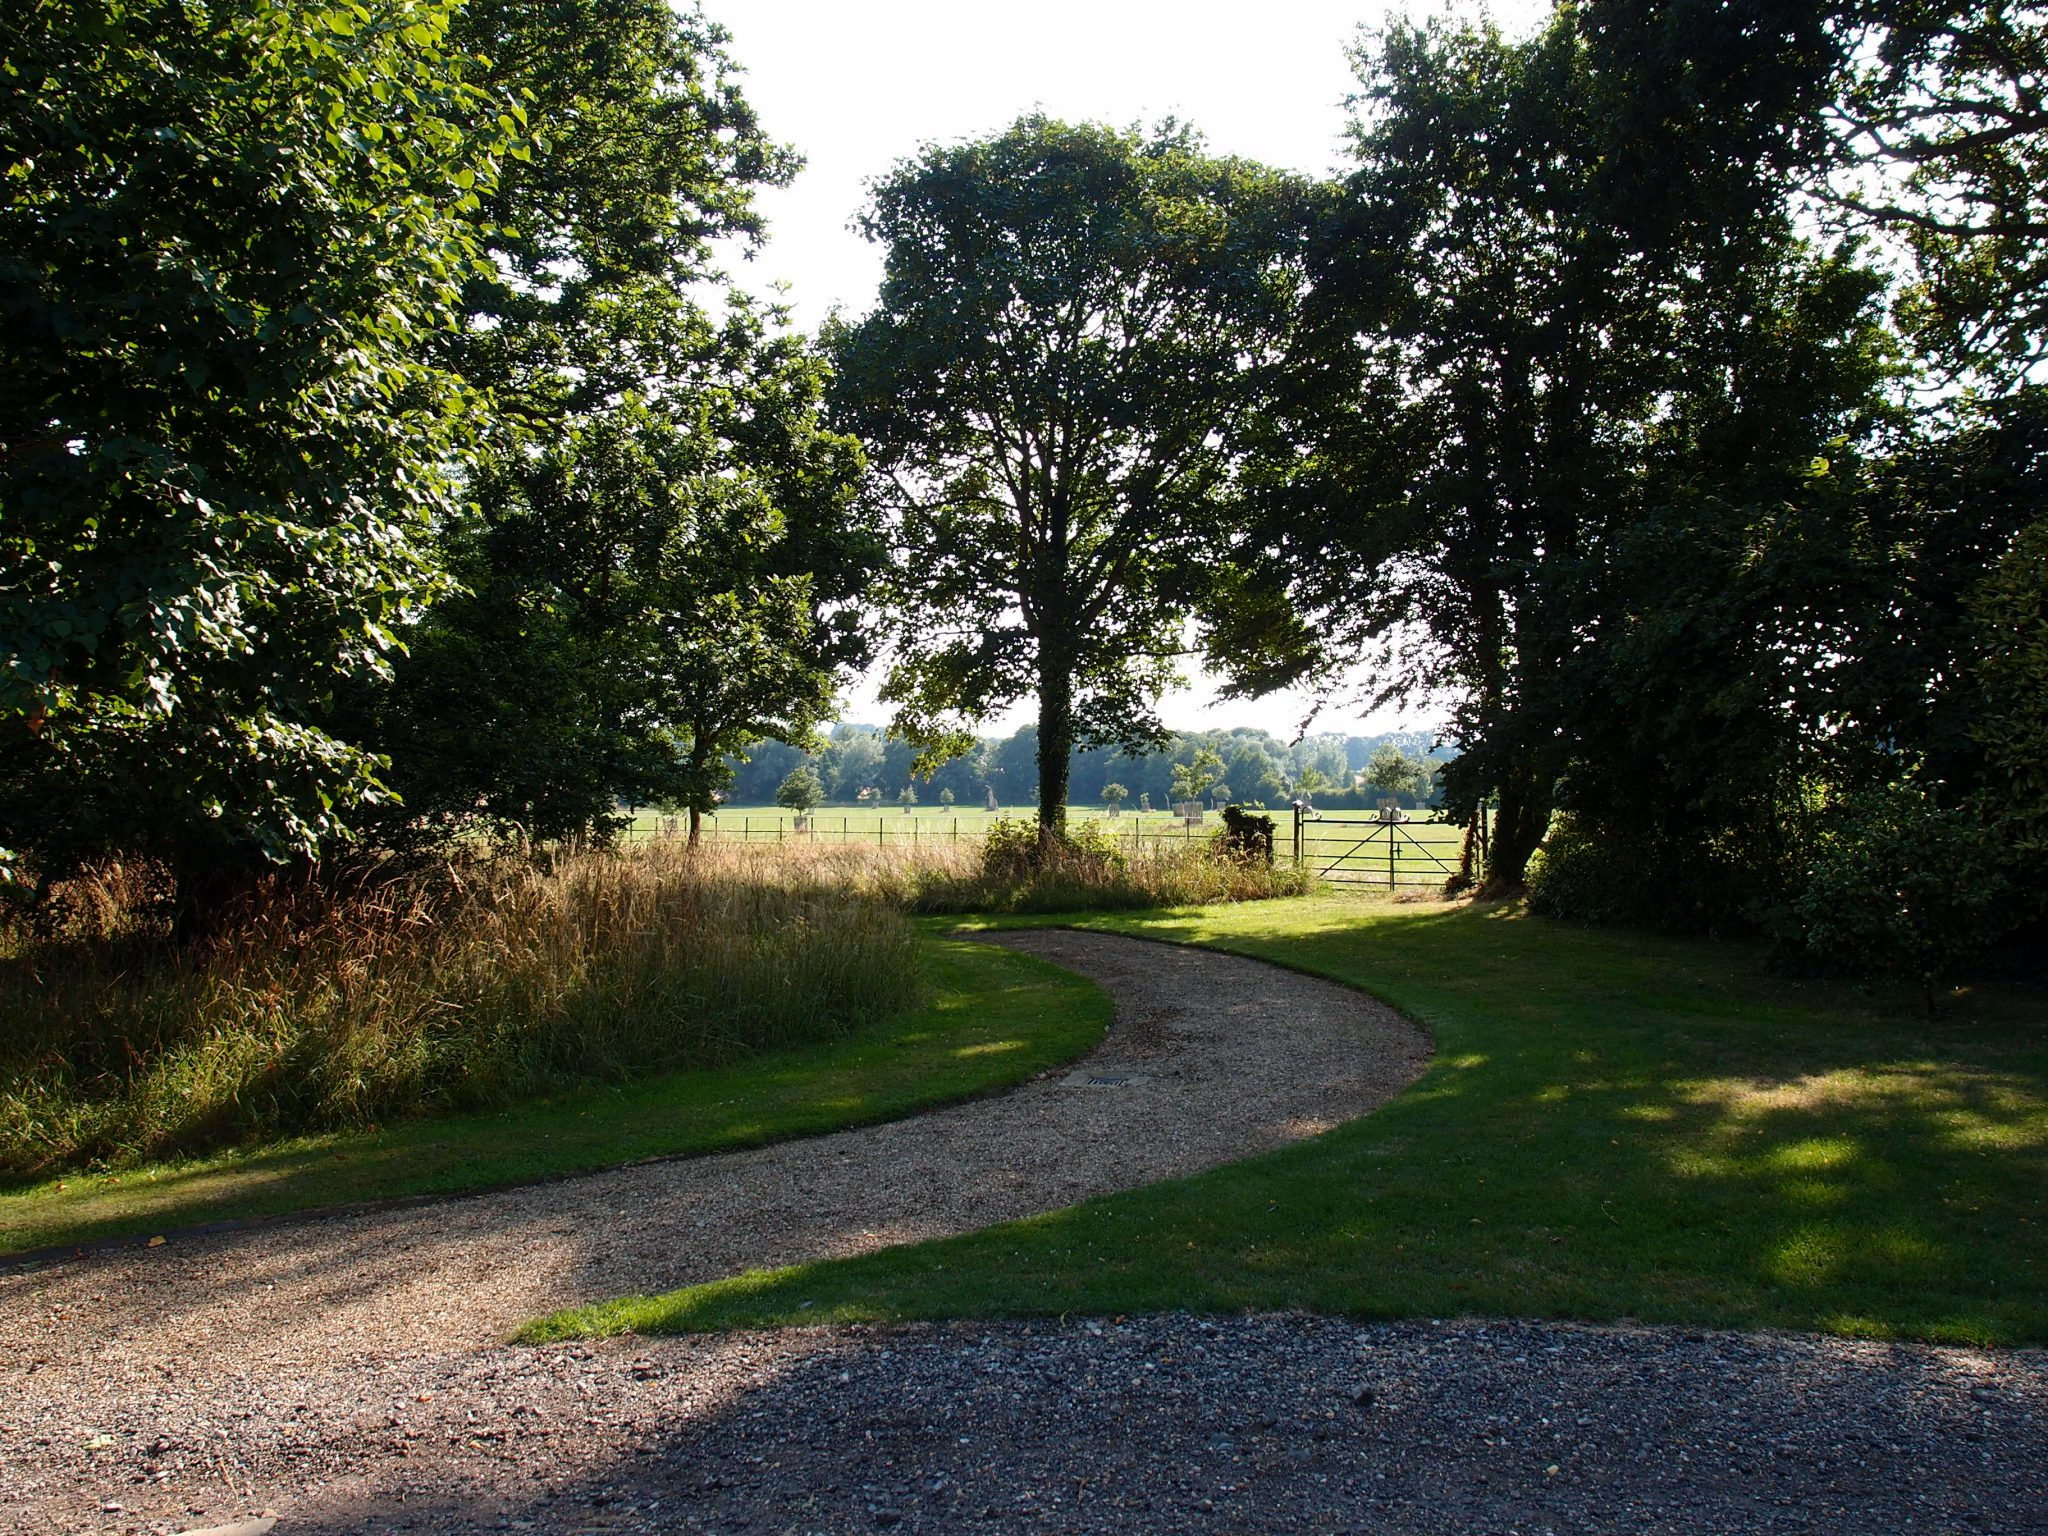 ...and found ourselves in the shady Wild Garden, which is surrounded by acres and acres of sunny pastureland.